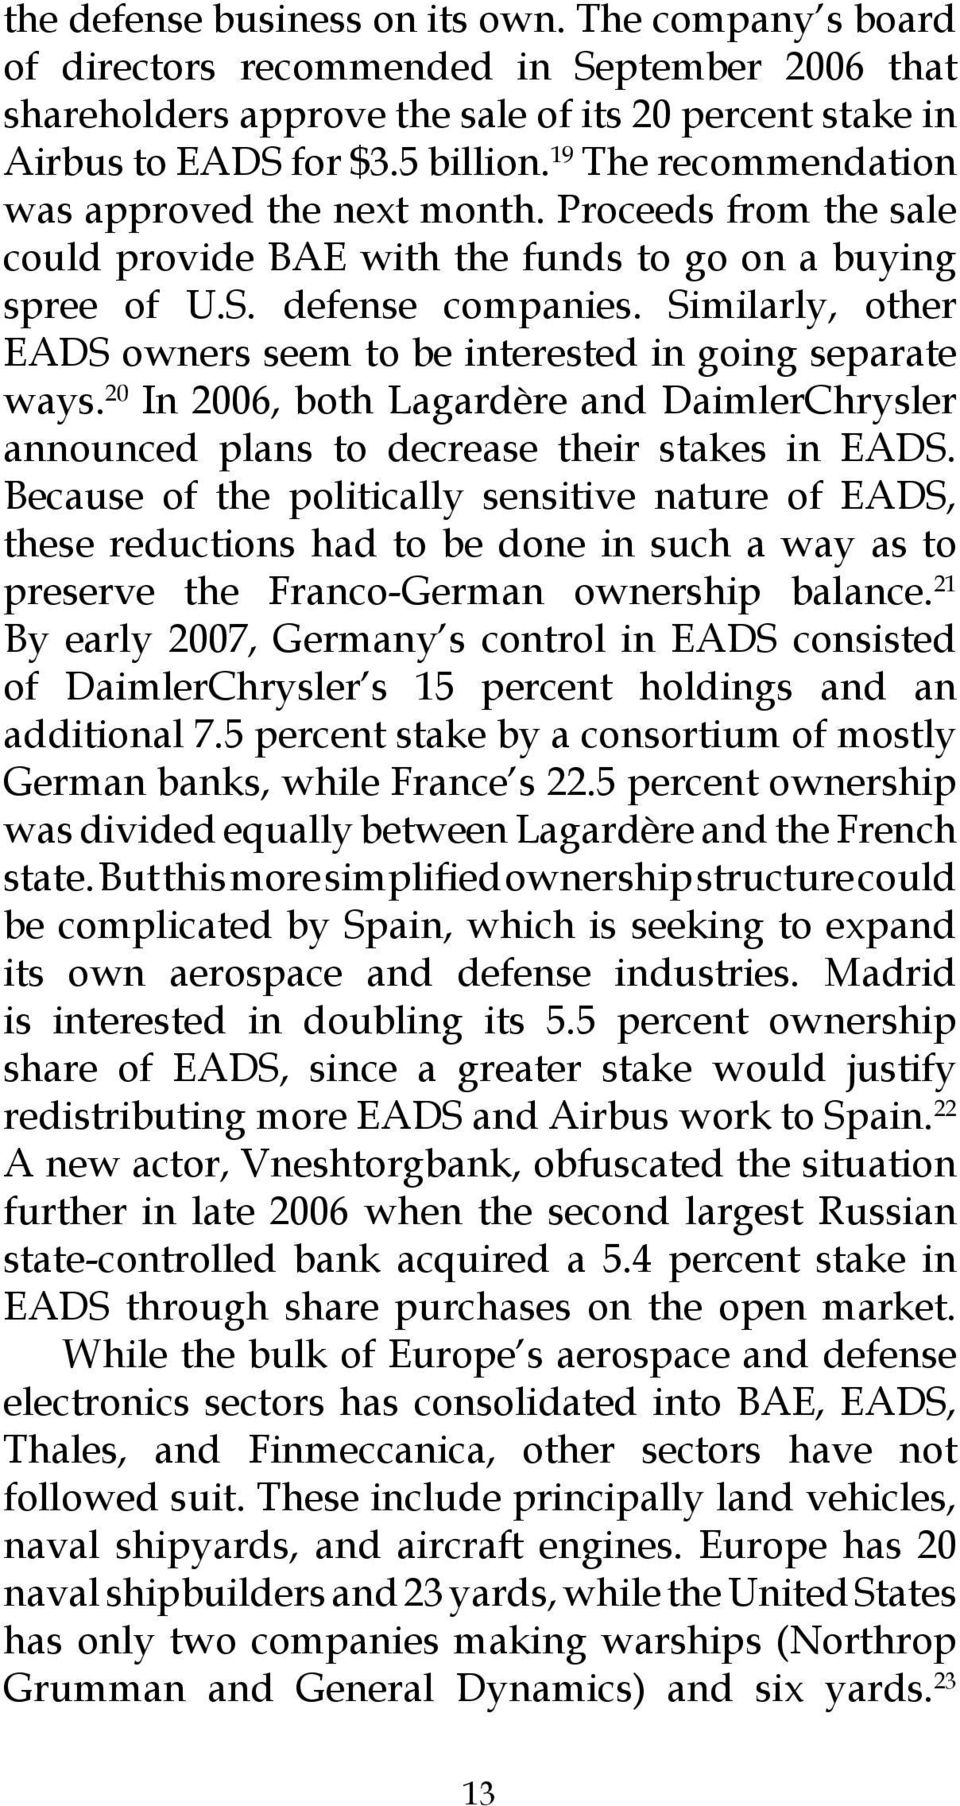 Similarly, other EADS owners seem to be interested in going separate ways. 20 In 2006, both Lagardère and DaimlerChrysler announced plans to decrease their stakes in EADS.